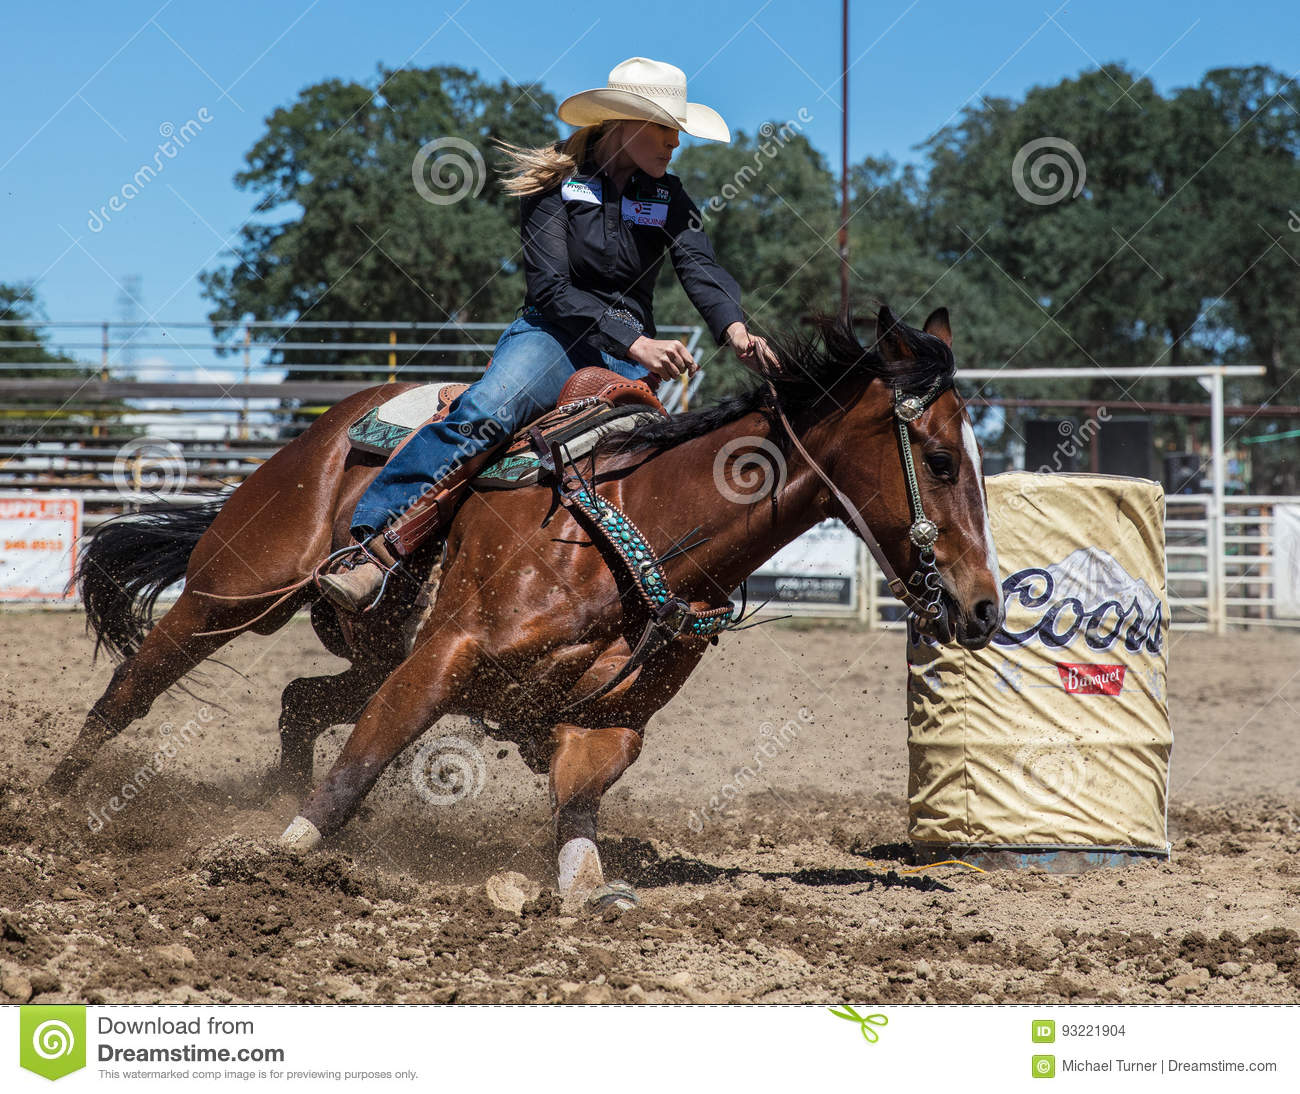 1 193 Barrel Racing Photos Free Royalty Free Stock Photos From Dreamstime